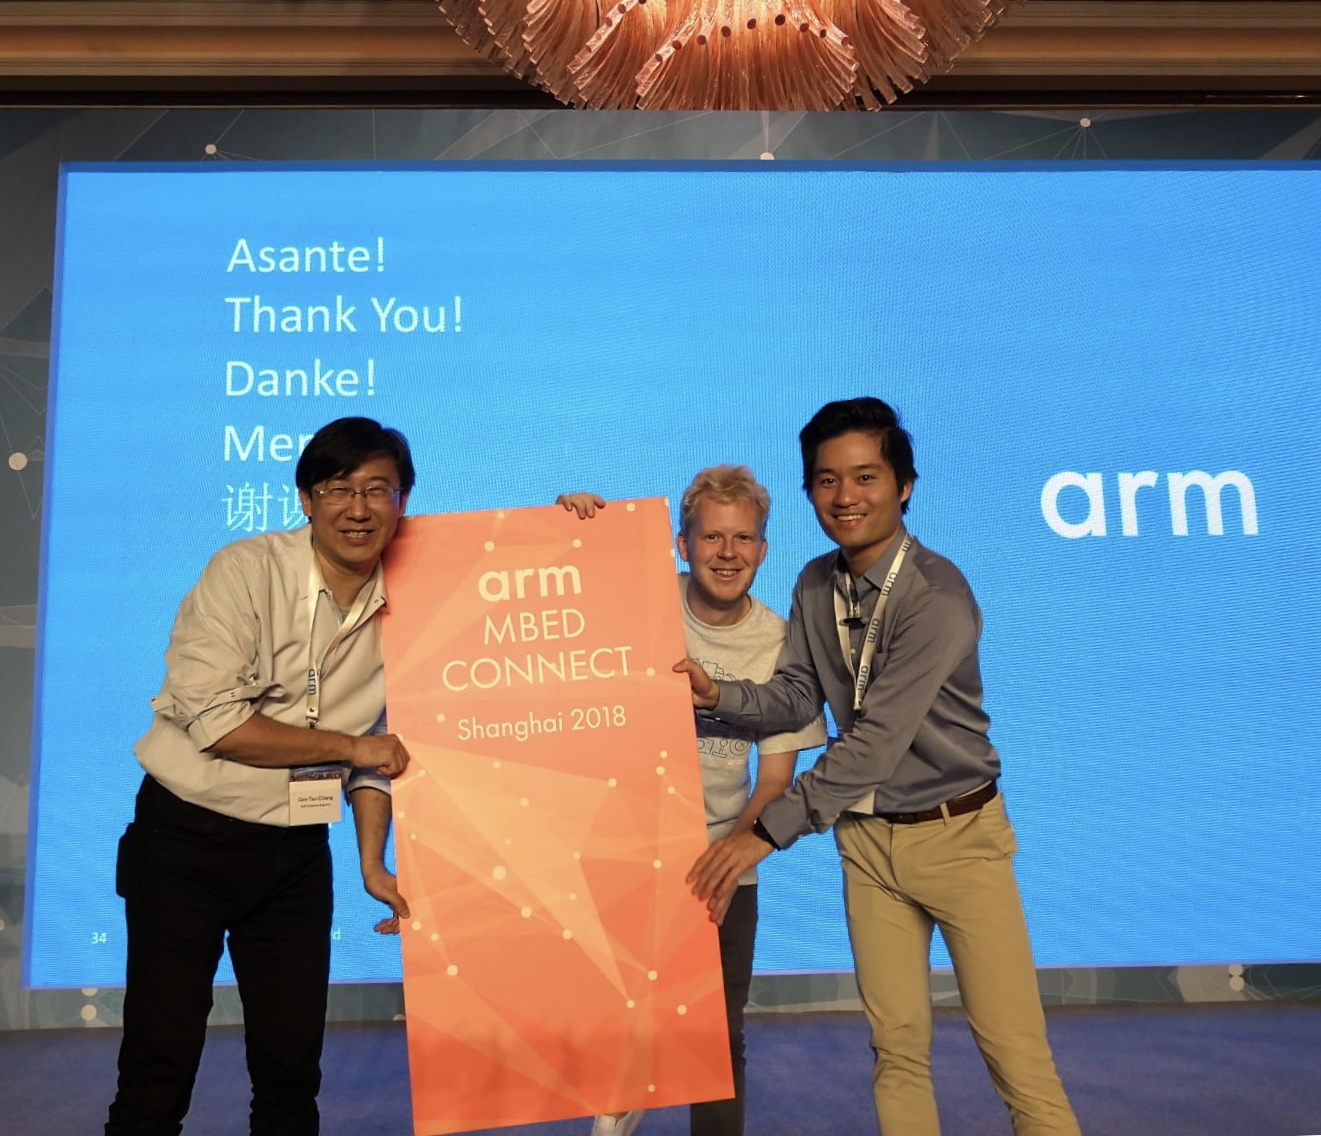 Gen-Tao Chiang, Jan Jongboom and Neil Tan at Mbed Connect China